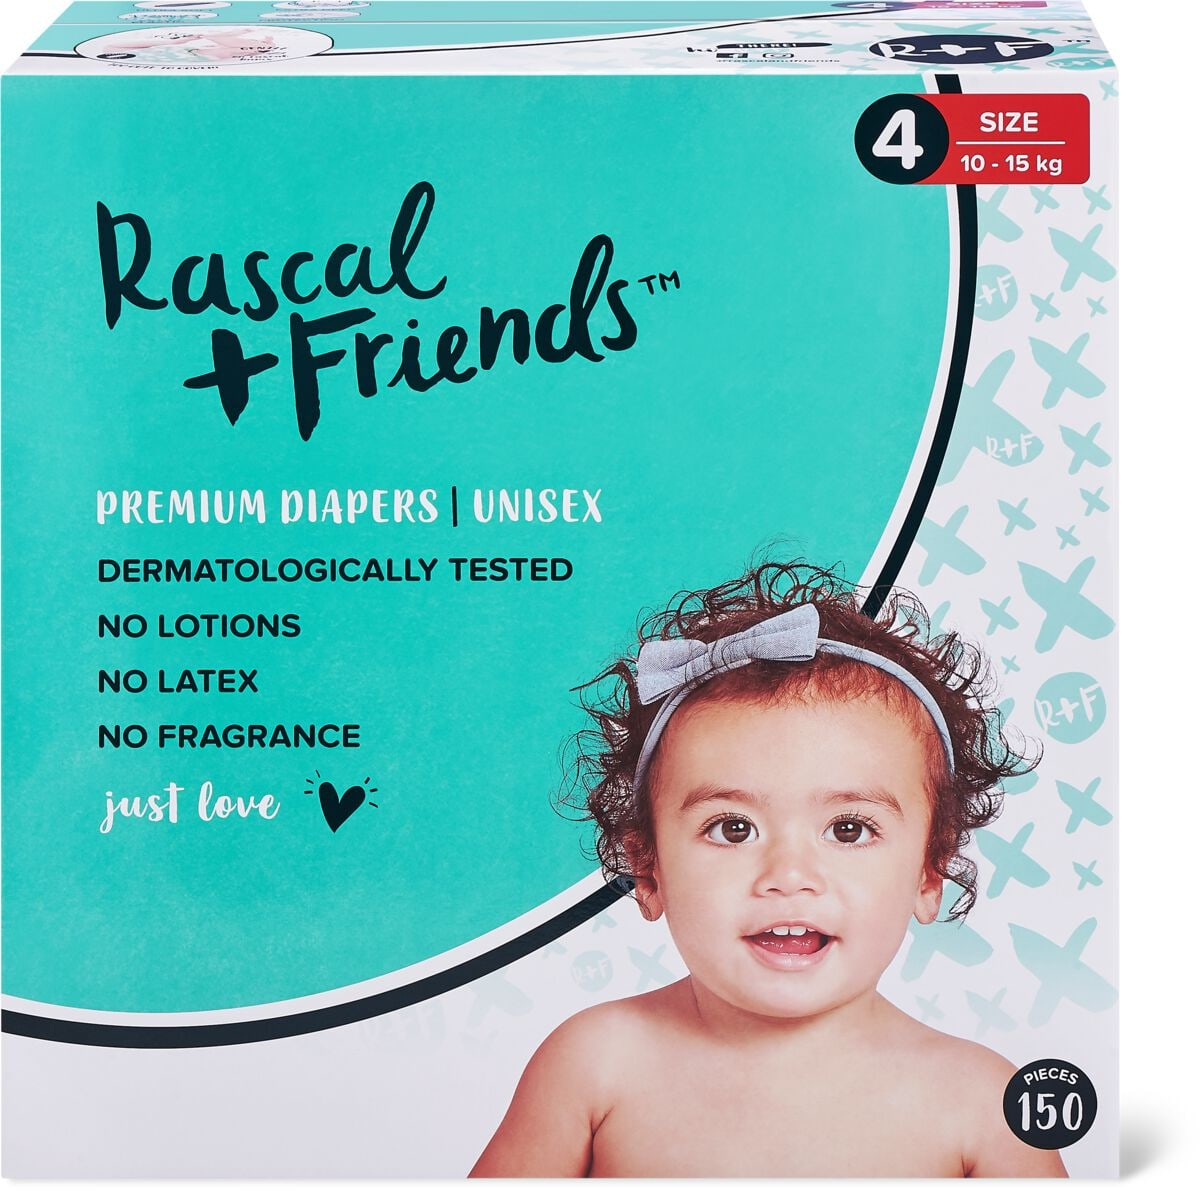 Rascal+Friends 4 Toddler Monthly Box